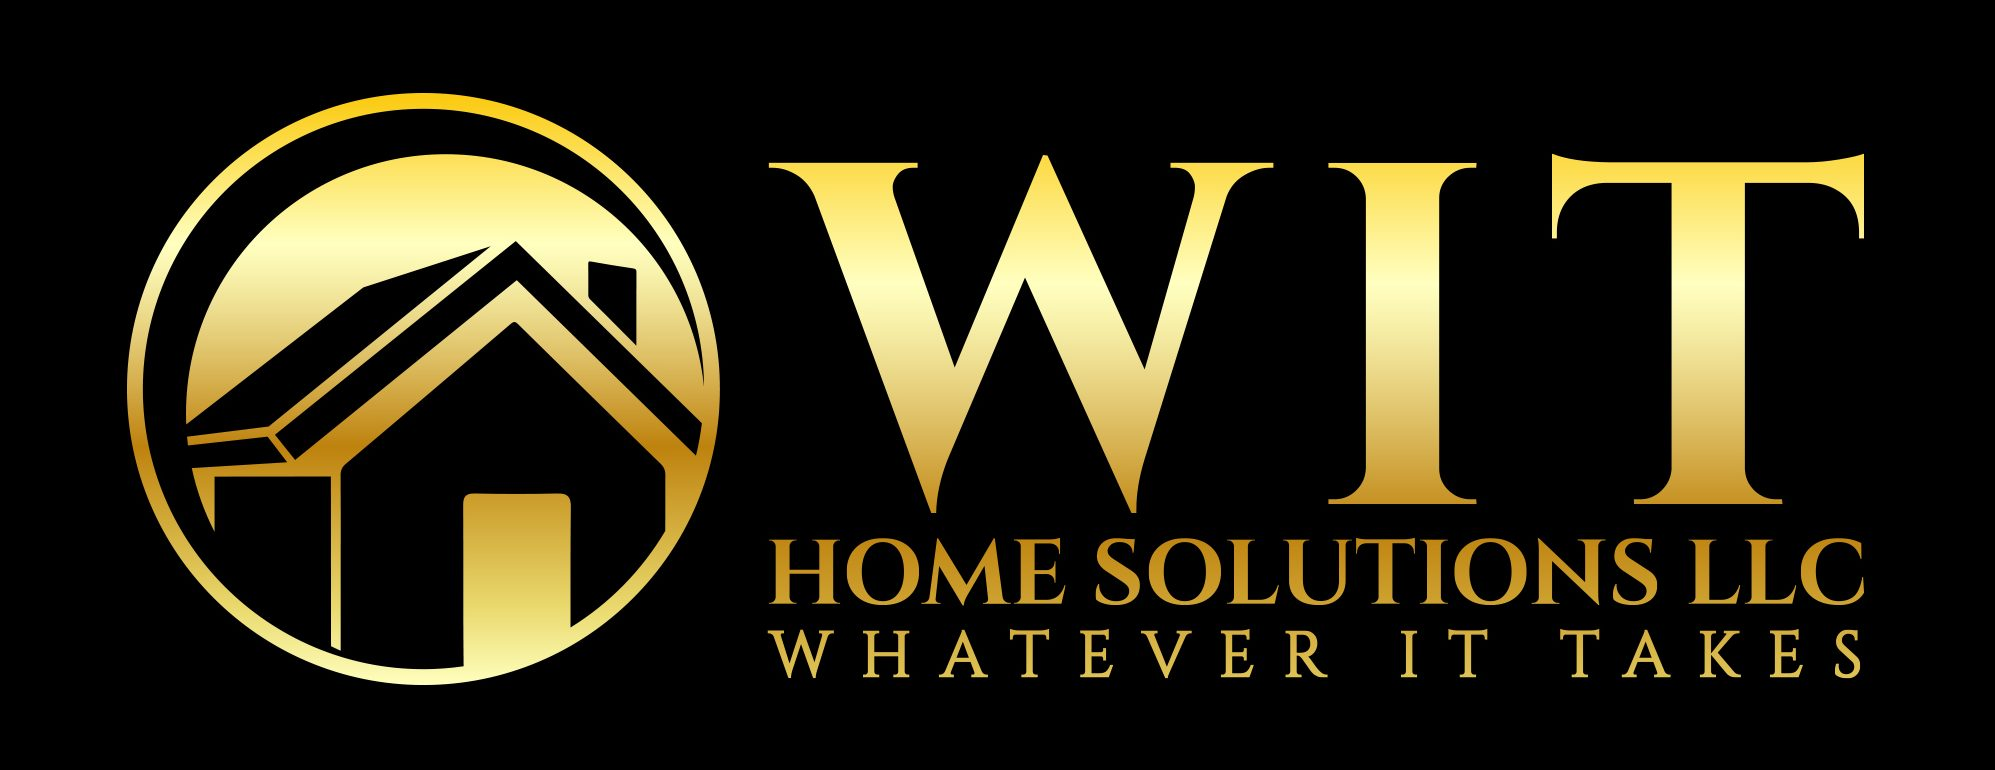 WIT Home Solutions, LLC